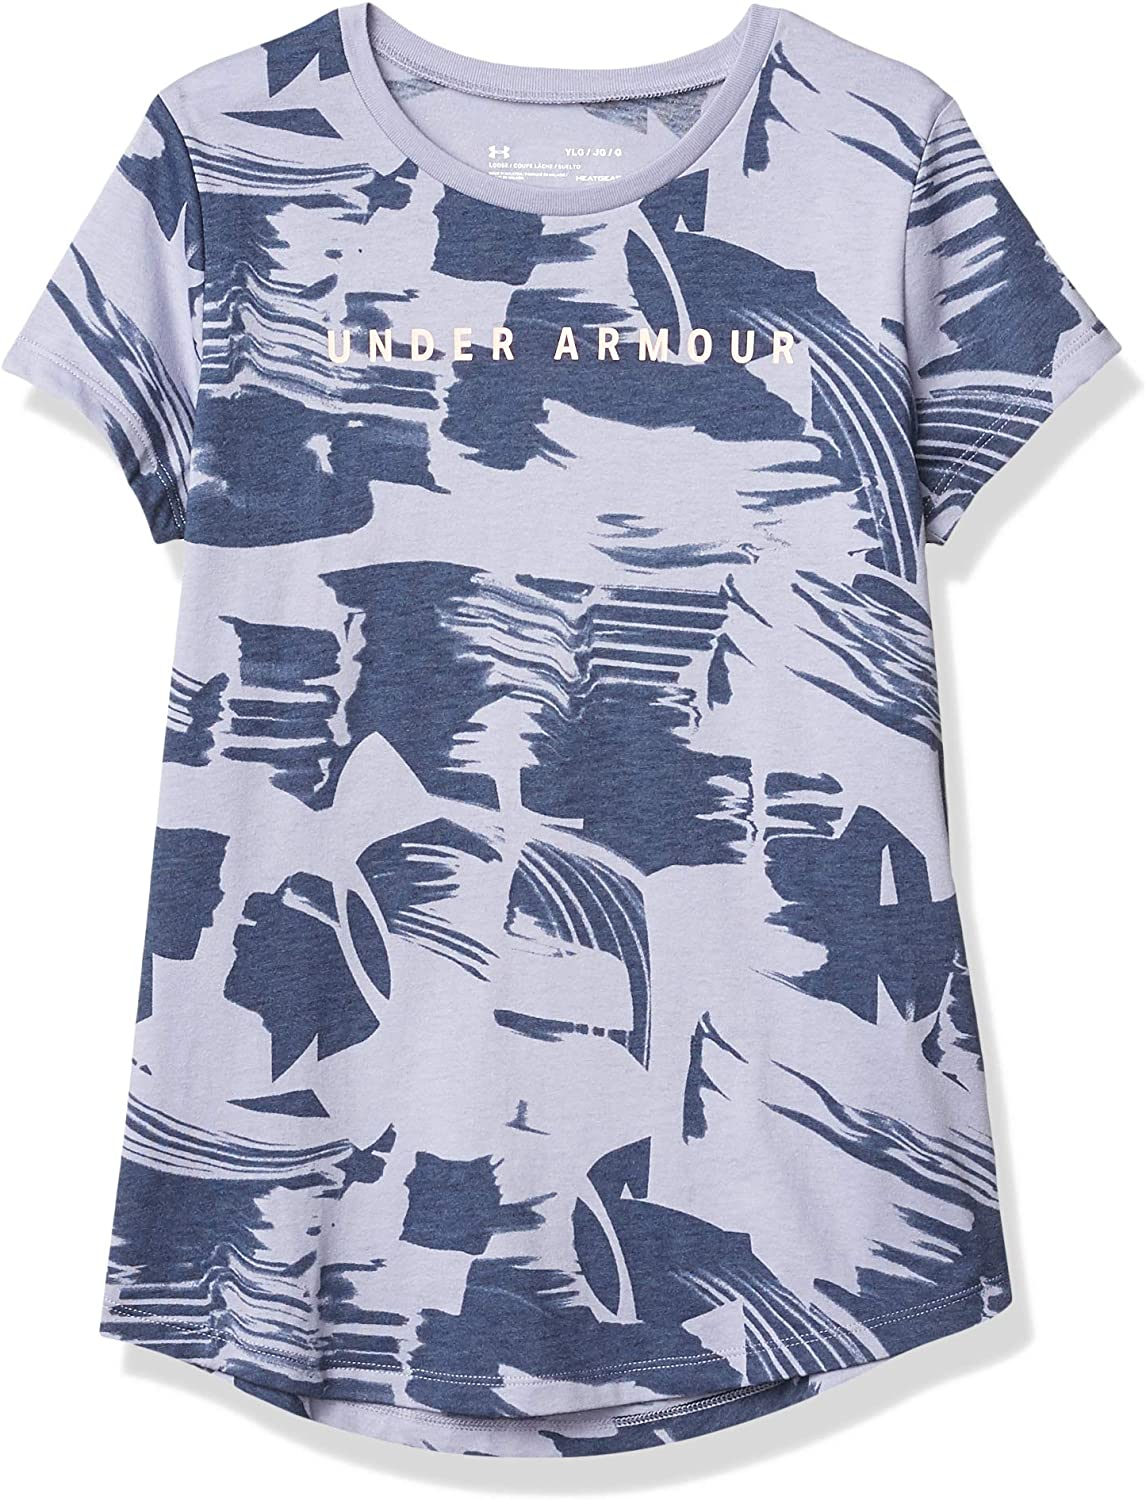 Under Armour Girls' Allover Print Sleeve Graphic Austin Mall Short El Paso Mall T-shirt